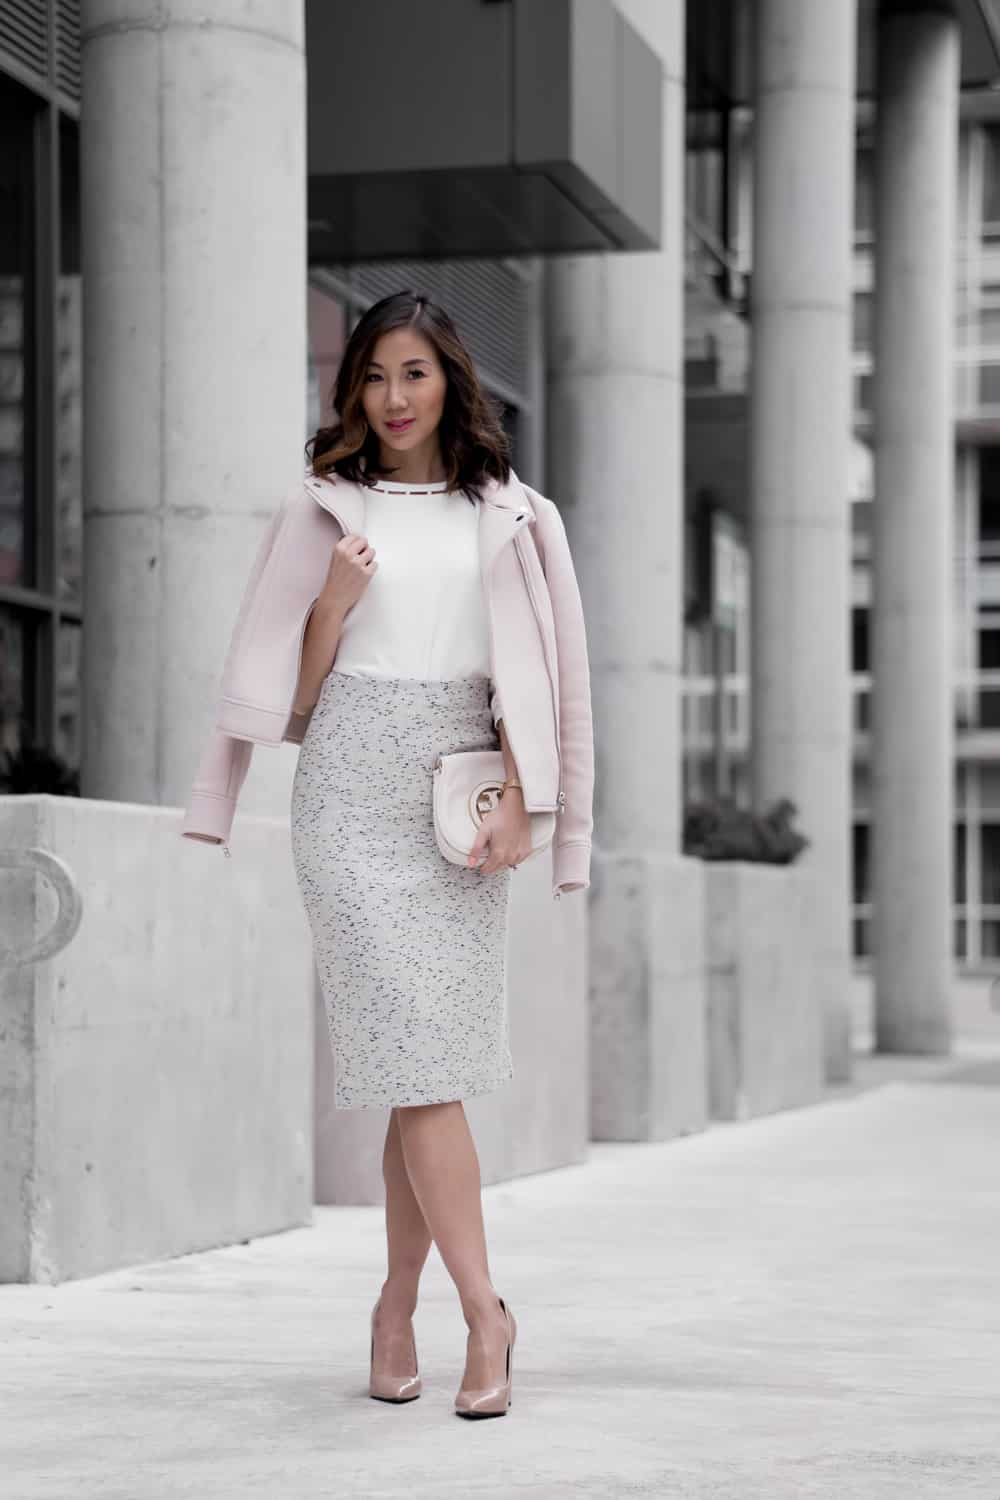 Head to toe look with Ann Taylor for the office #workwear #ootd #9to5chic